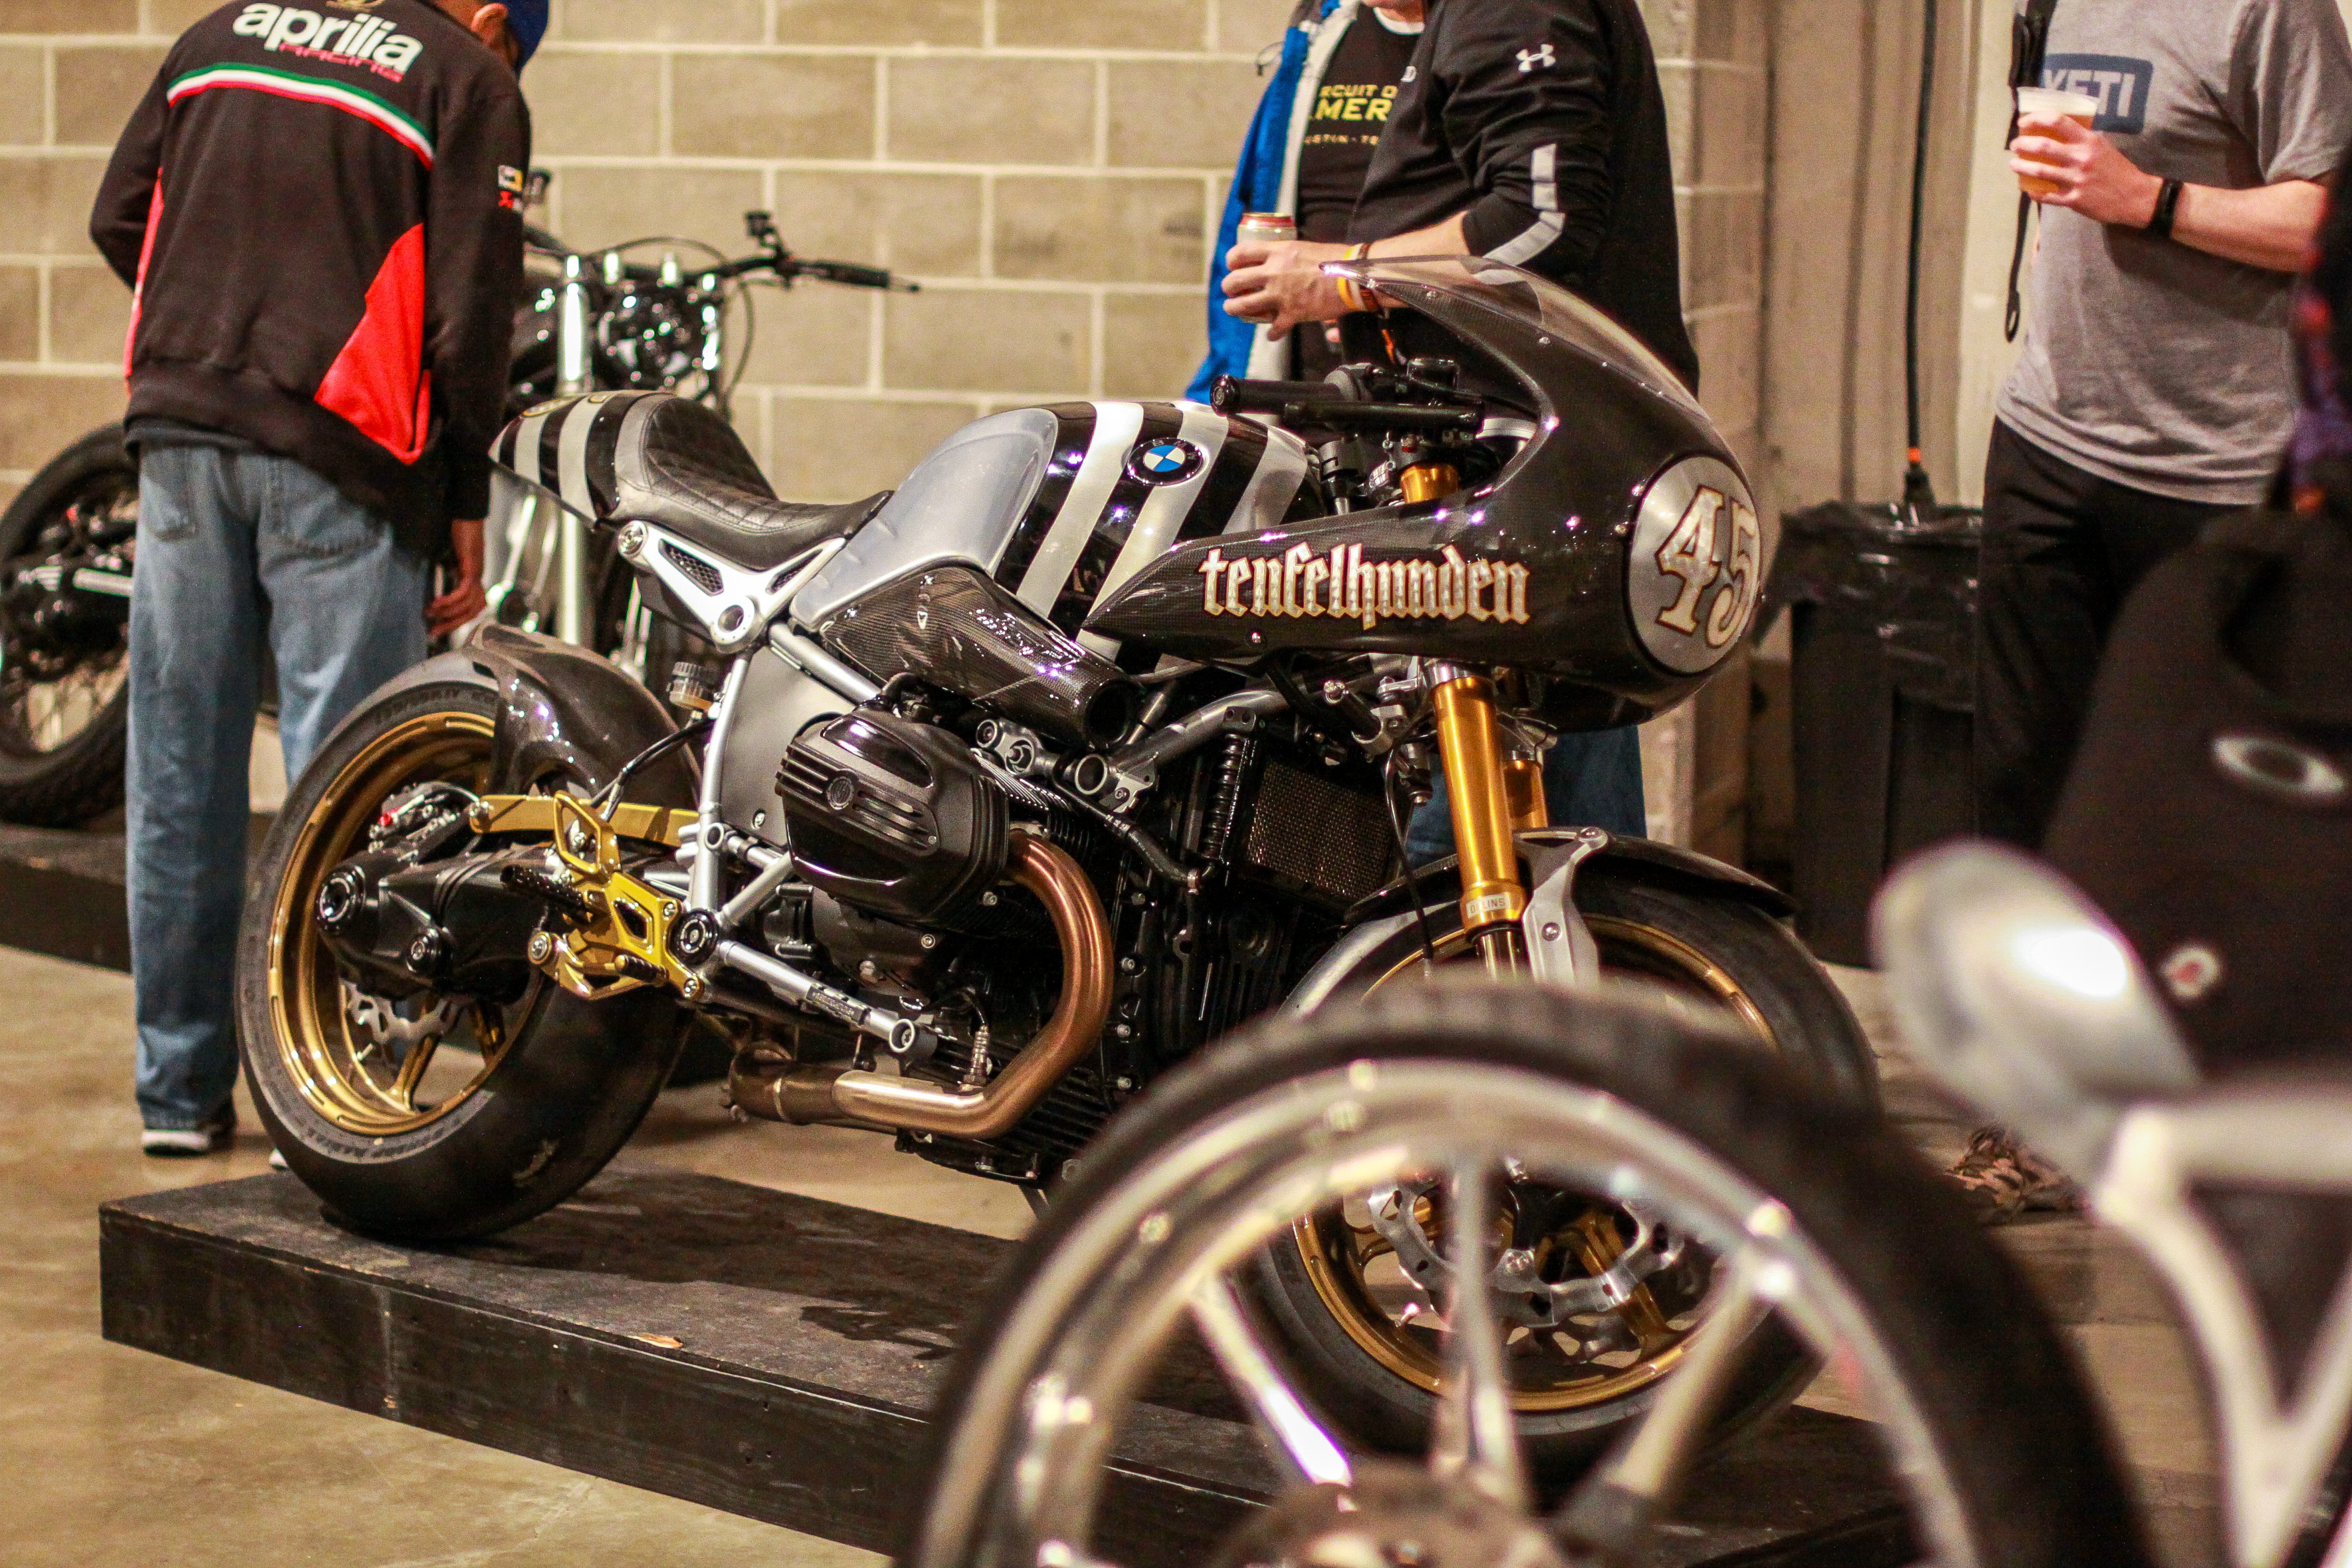 RSD custom BMW at Handbuilt Motorcycle Show 2019